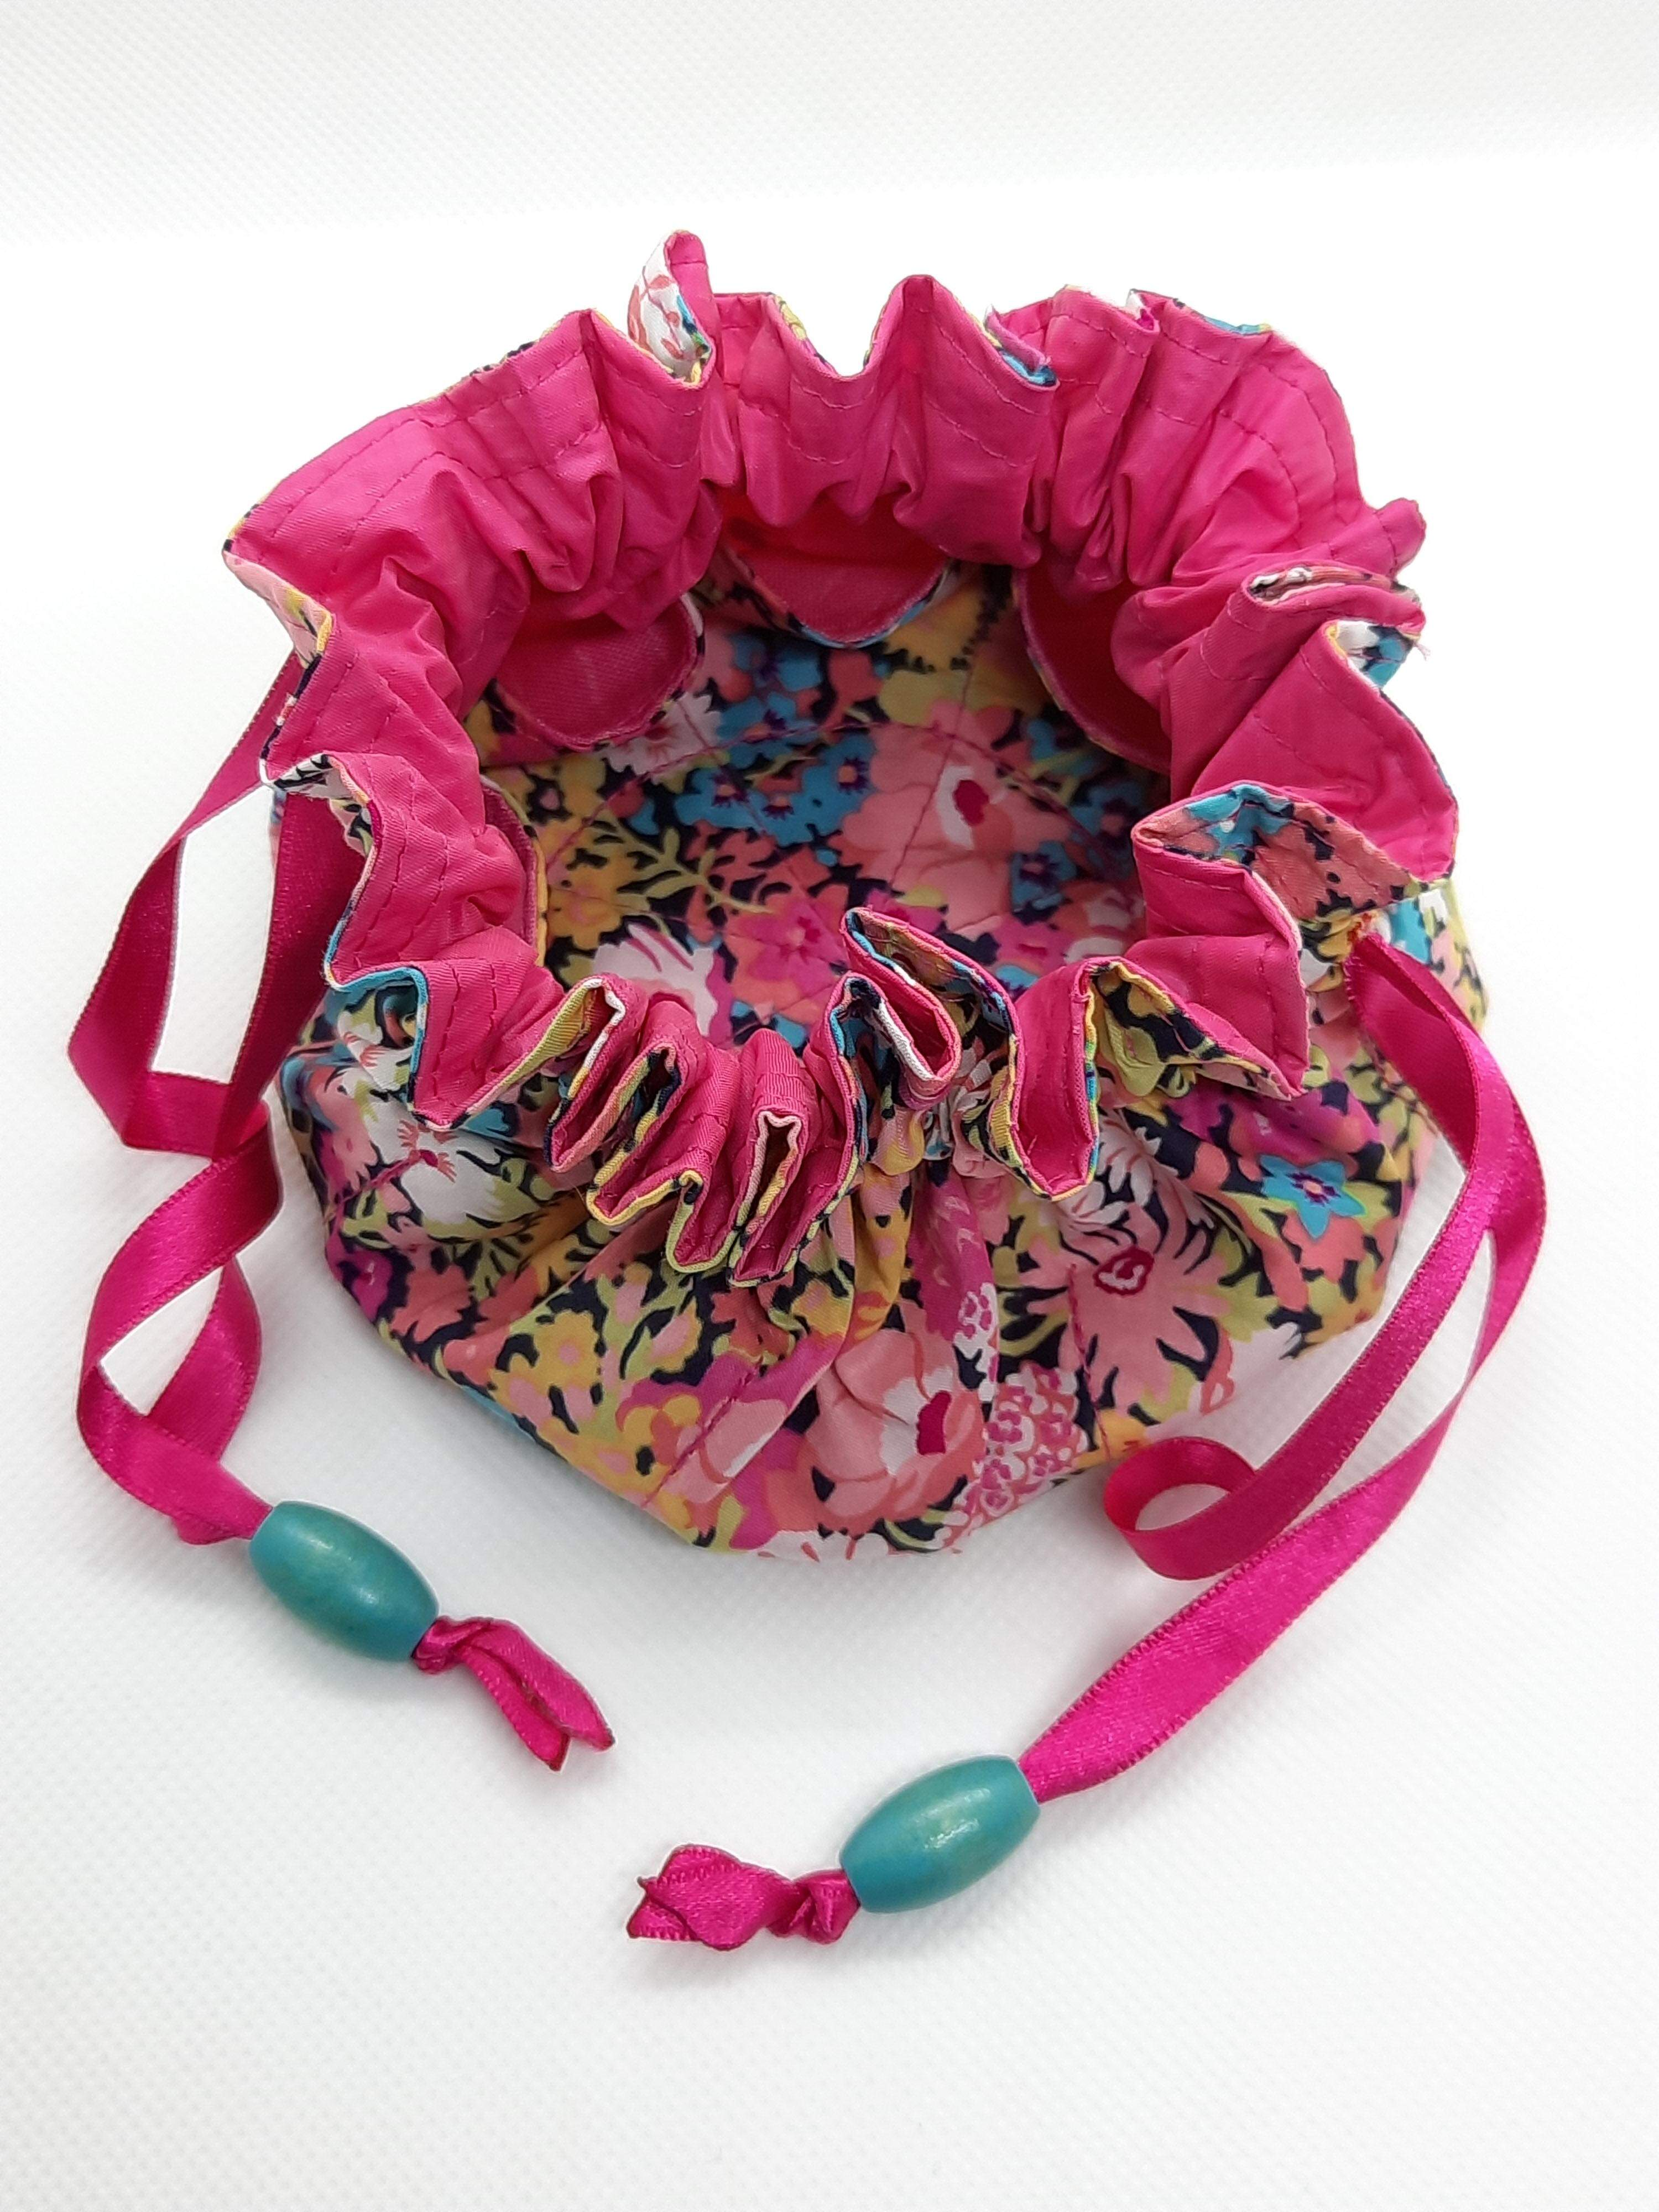 Jewellery Pouch - pink lining, pink ribbon, jade bead